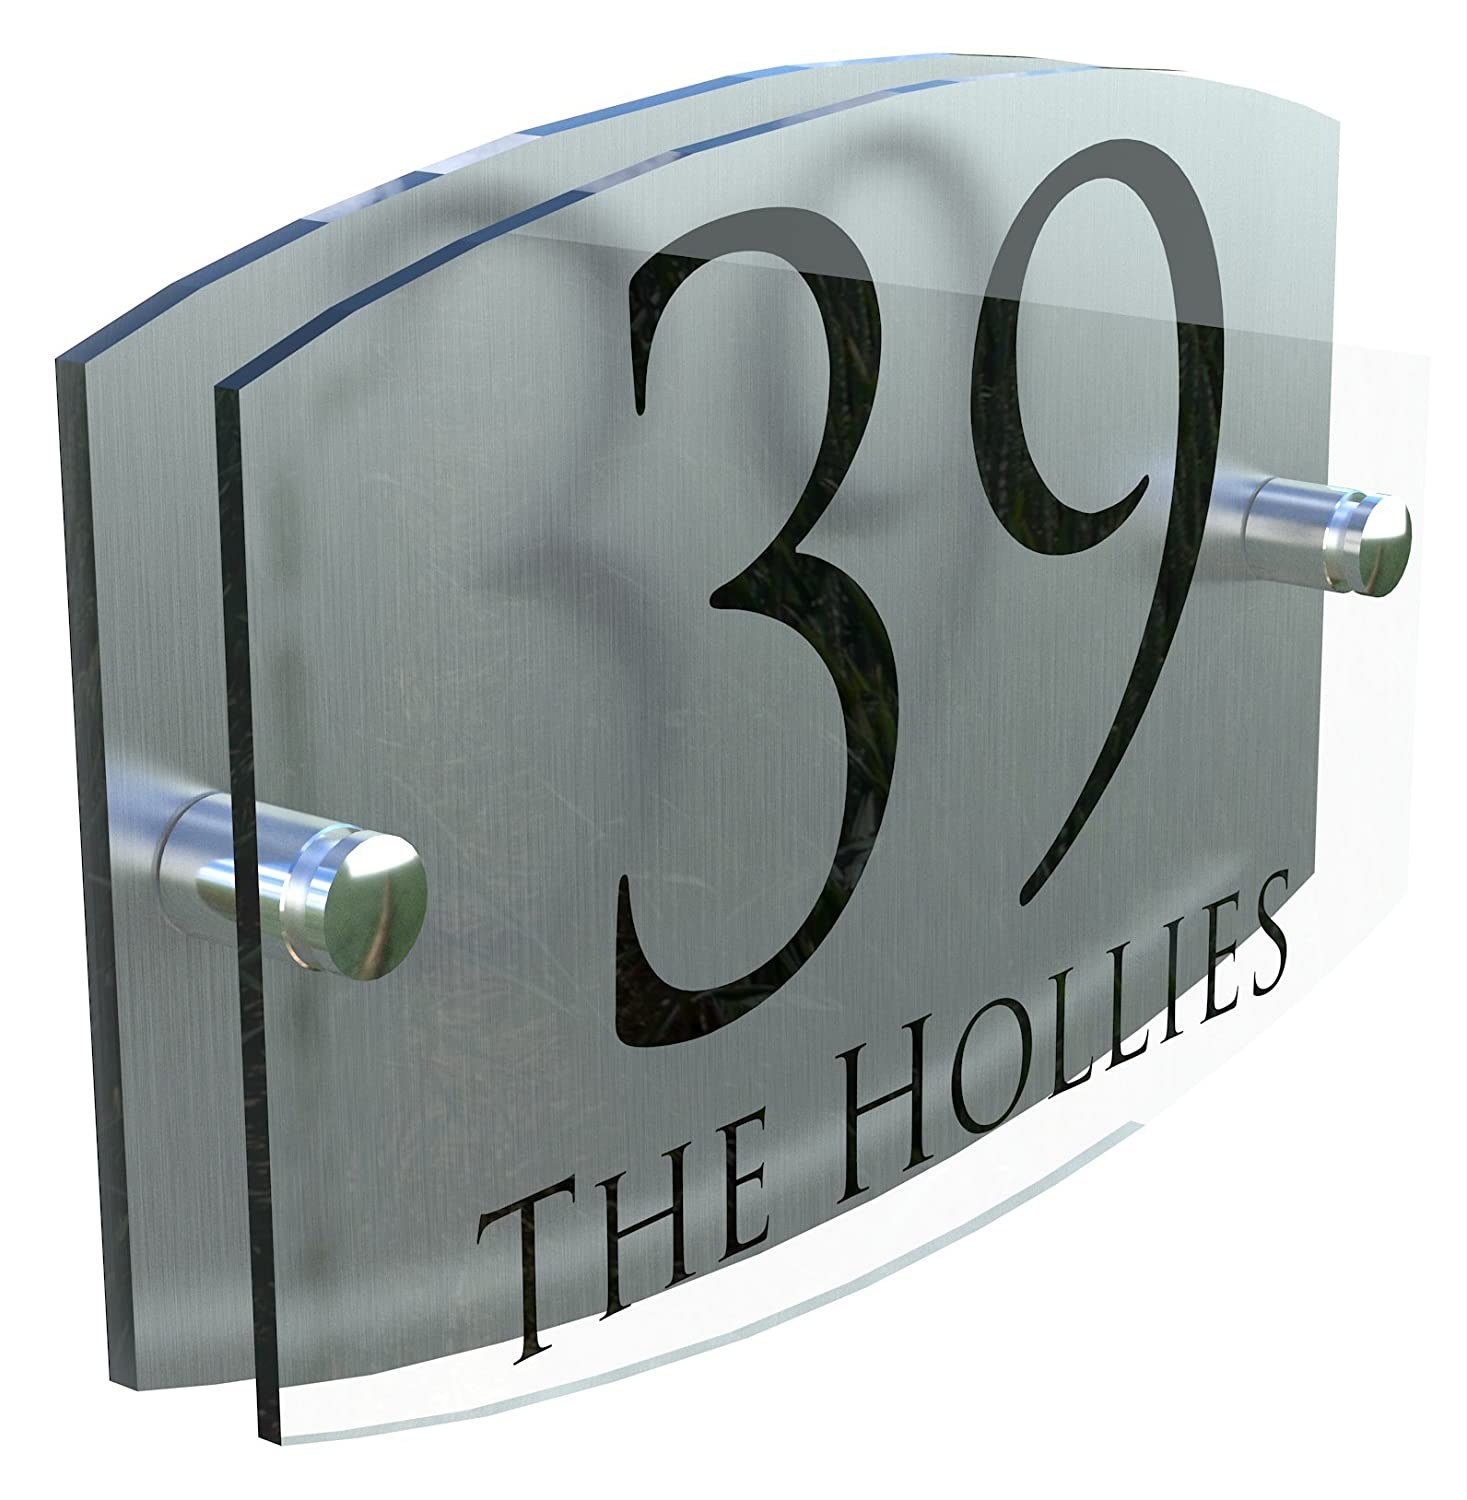 Acrylic & Aluminium Modern House Sign door Number | Genuine Perspex! | UV Printed | Full fixtures and fittings | FREE UK POSTAGE - EMA5-28B-S K Smart Sign Ltd